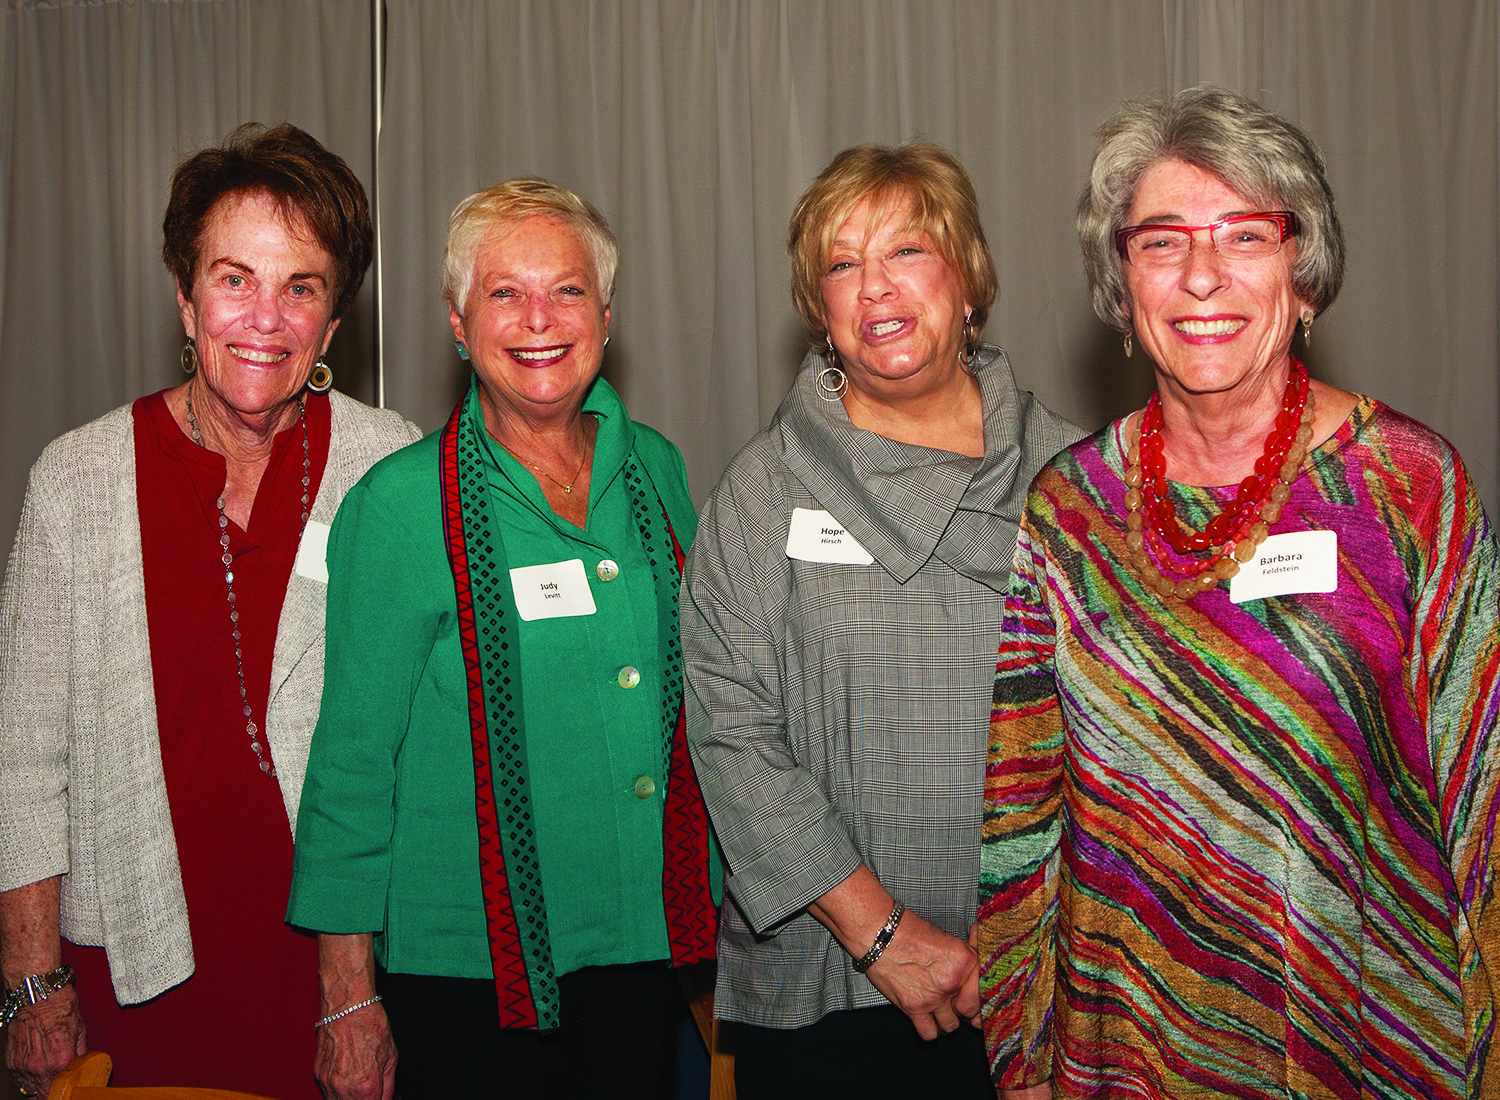 At the Women's pre-reception (left to right): Judy Robbins, Judy Levitt, Hope Hirsch and Barbara Feldstein.